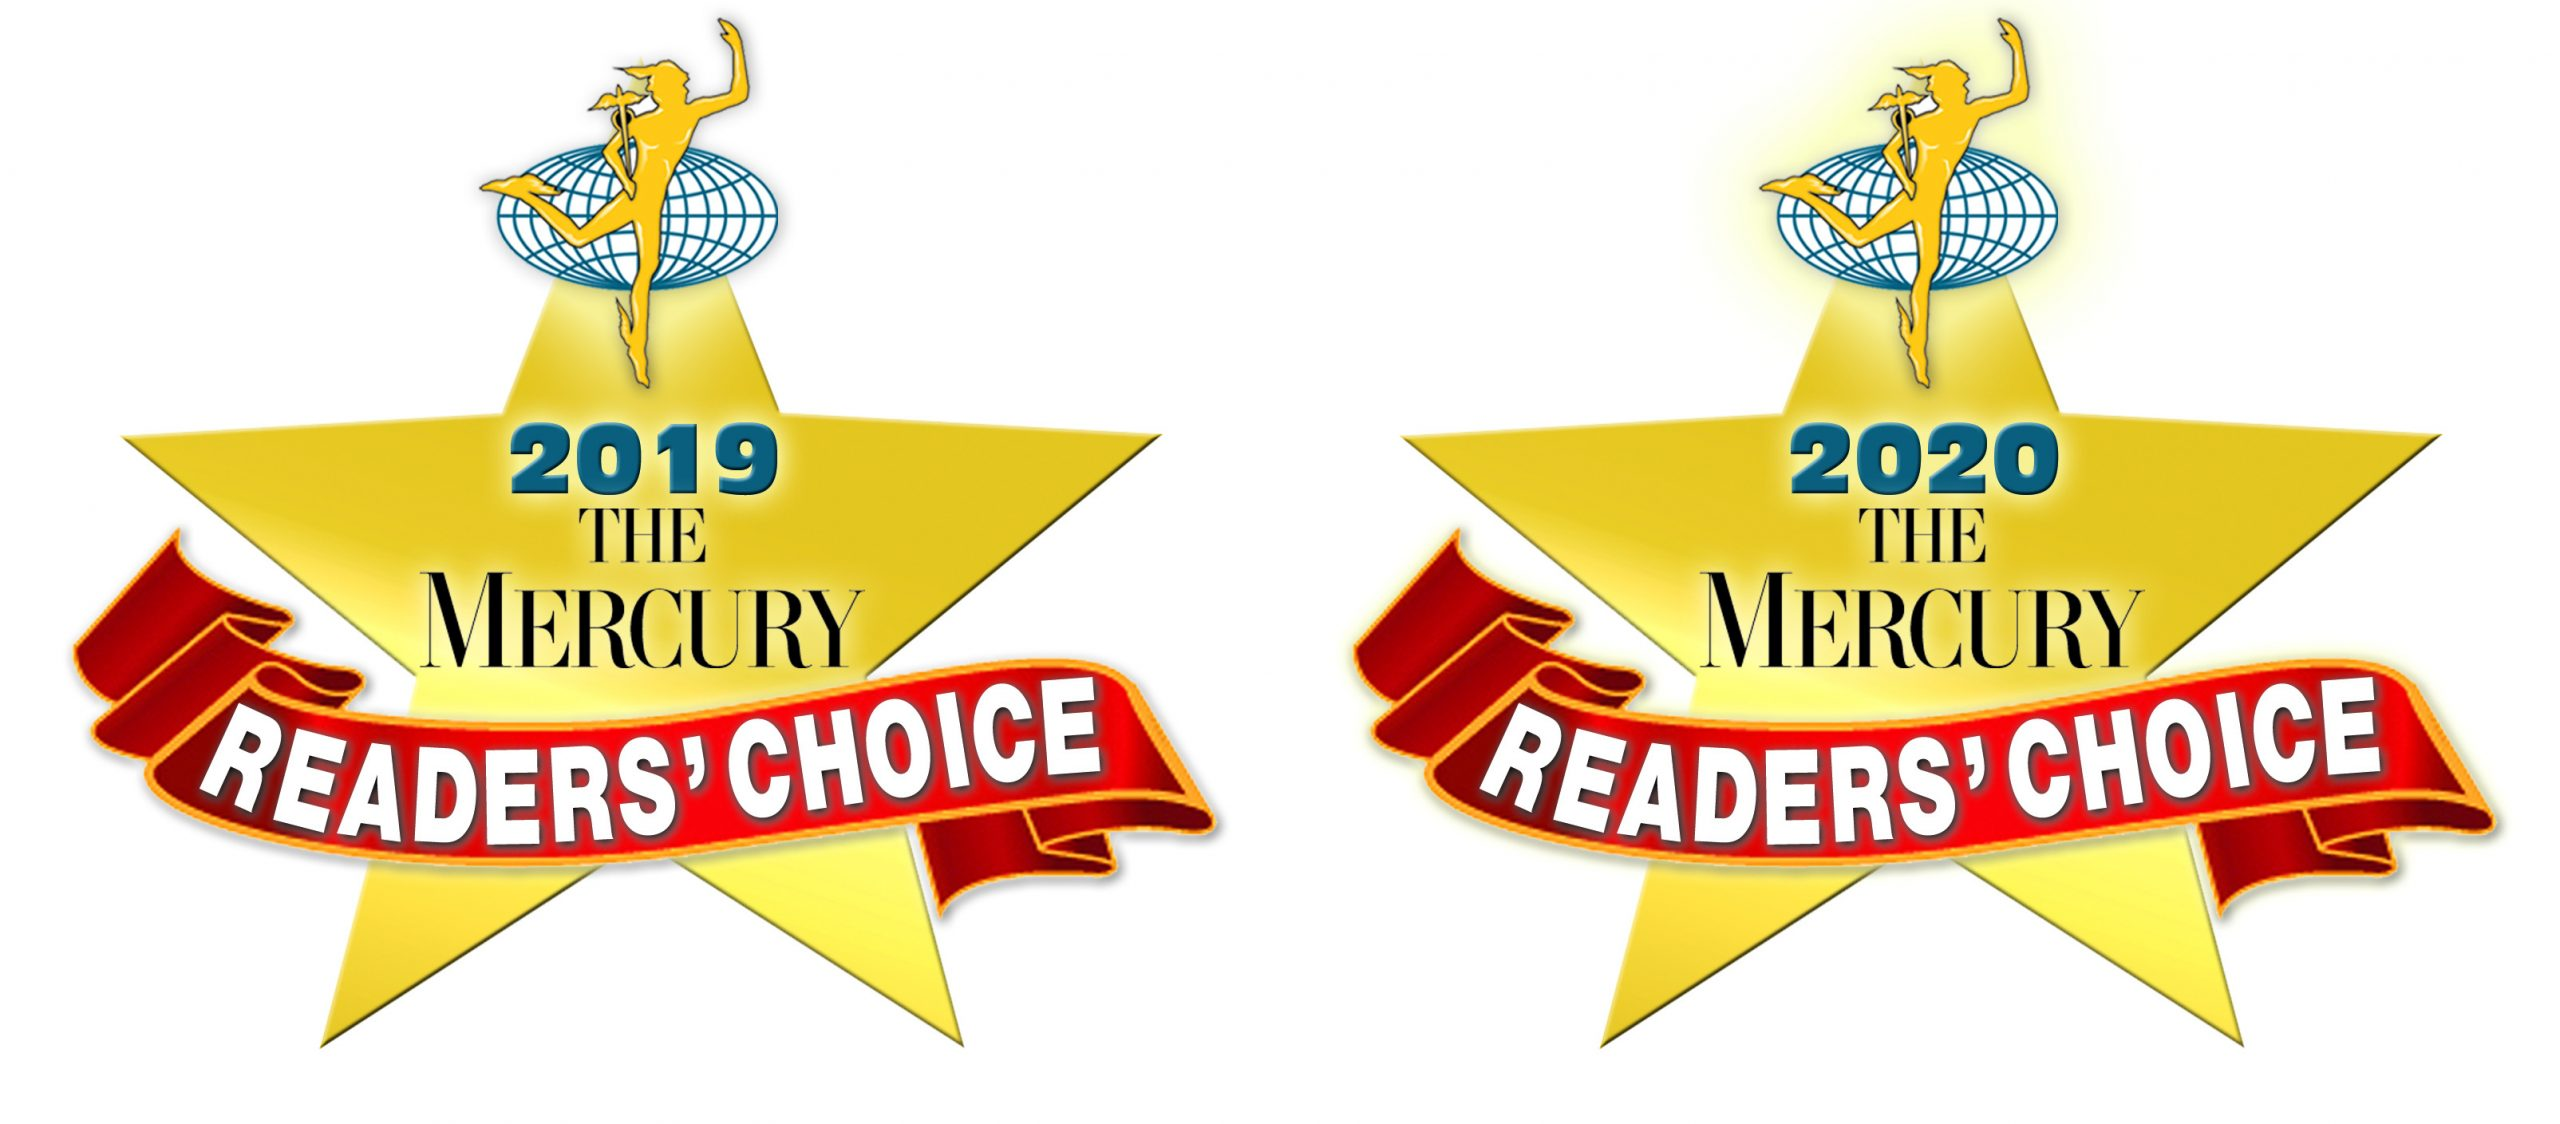 Readers' Choice Award Icons